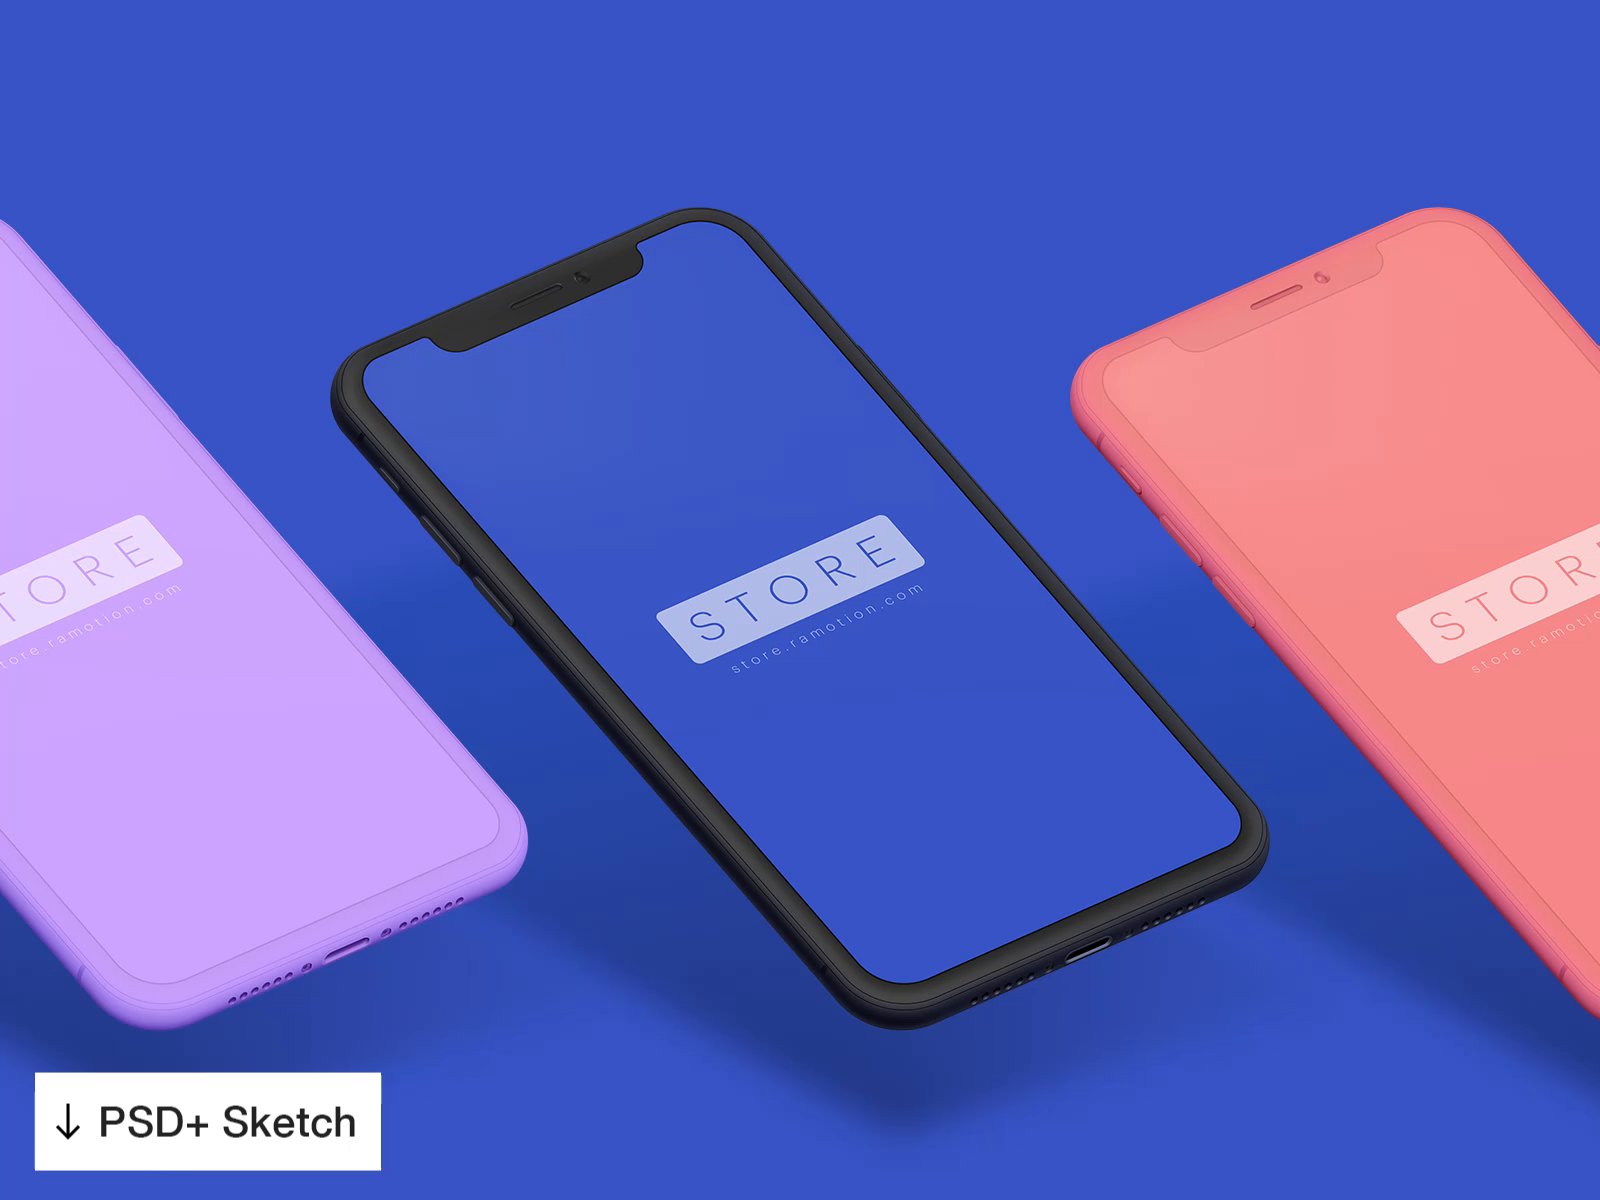 Iphone x clay mockup psd sketch template